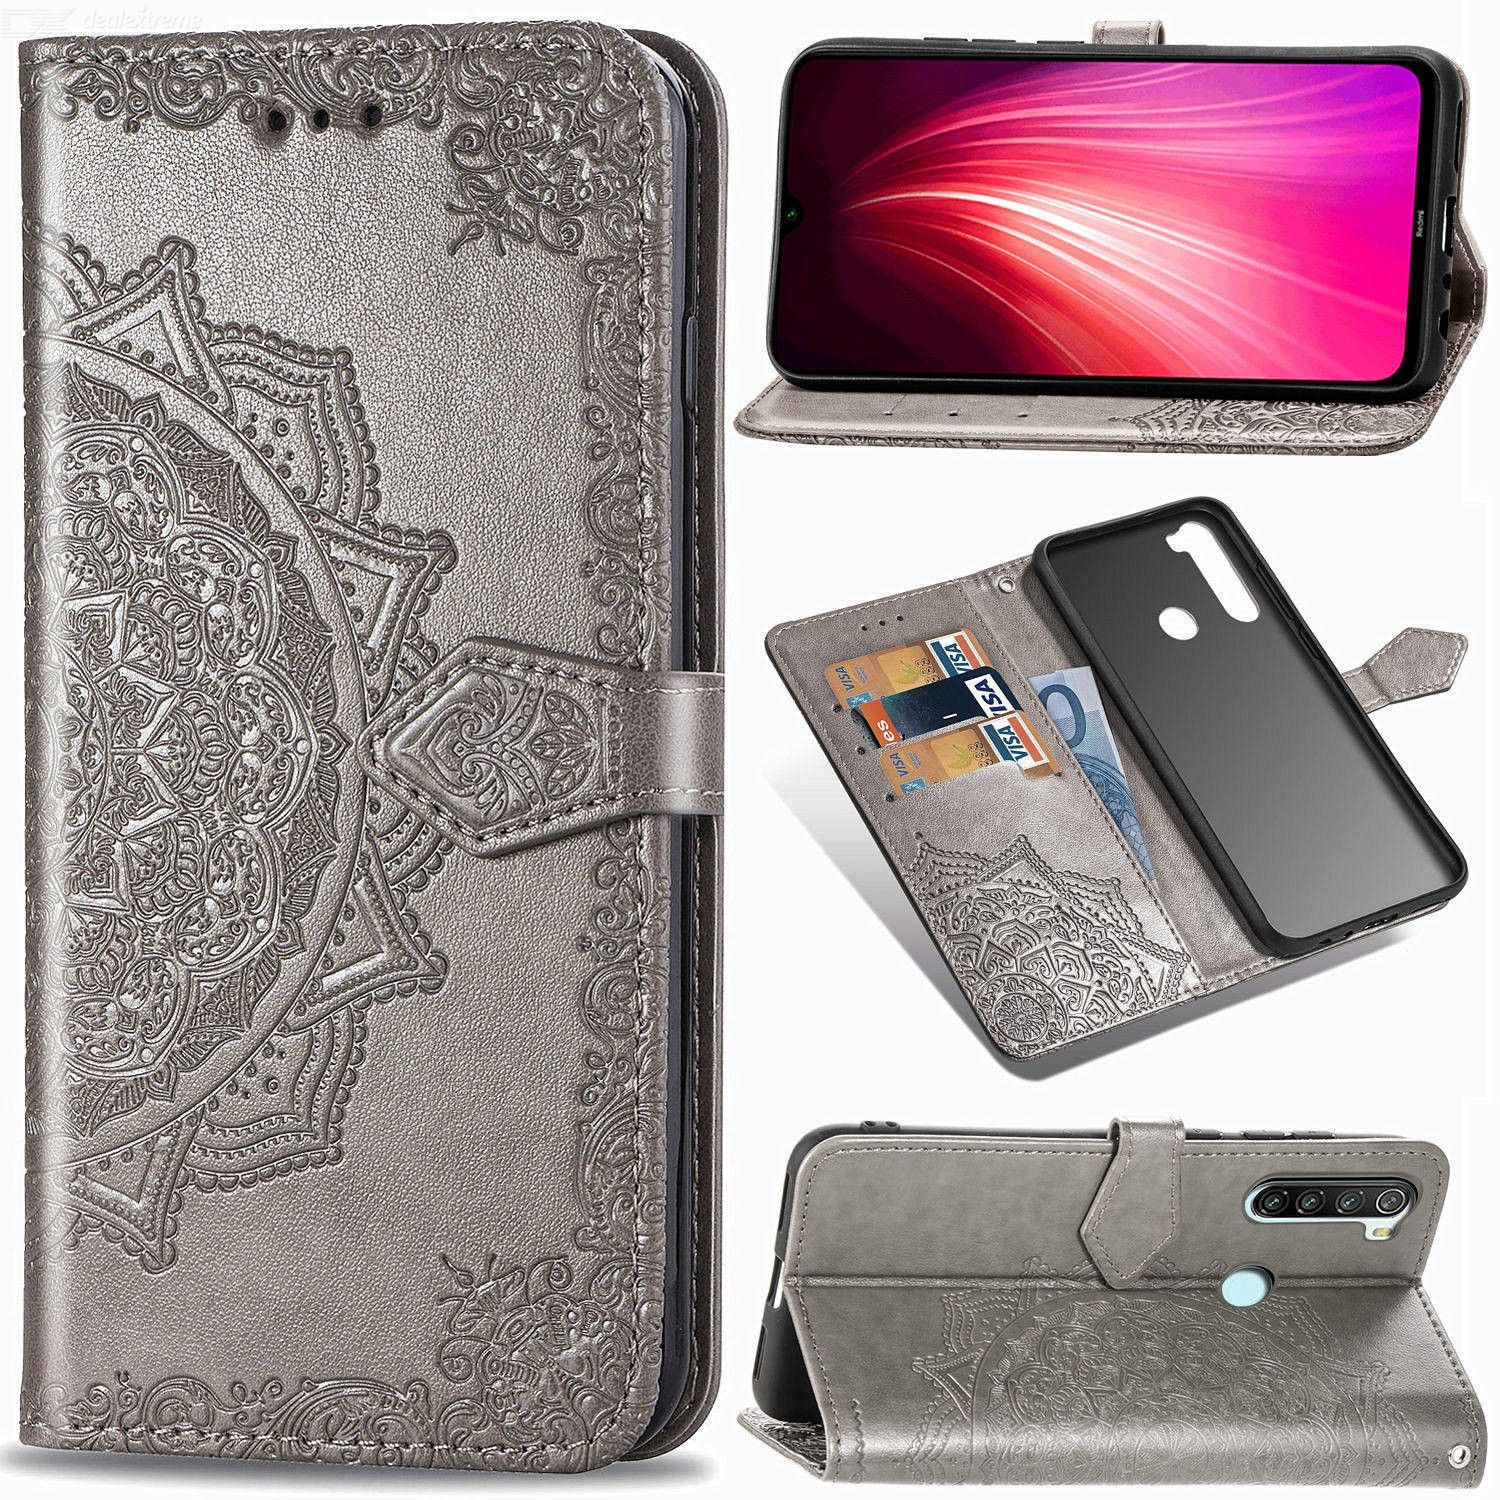 Leather Phone Wallet Case, Flower Pattern Folio Flip Cover For Xiaomi Redmi 6/6A/6 Pro/Note 6/Note 6 Pro